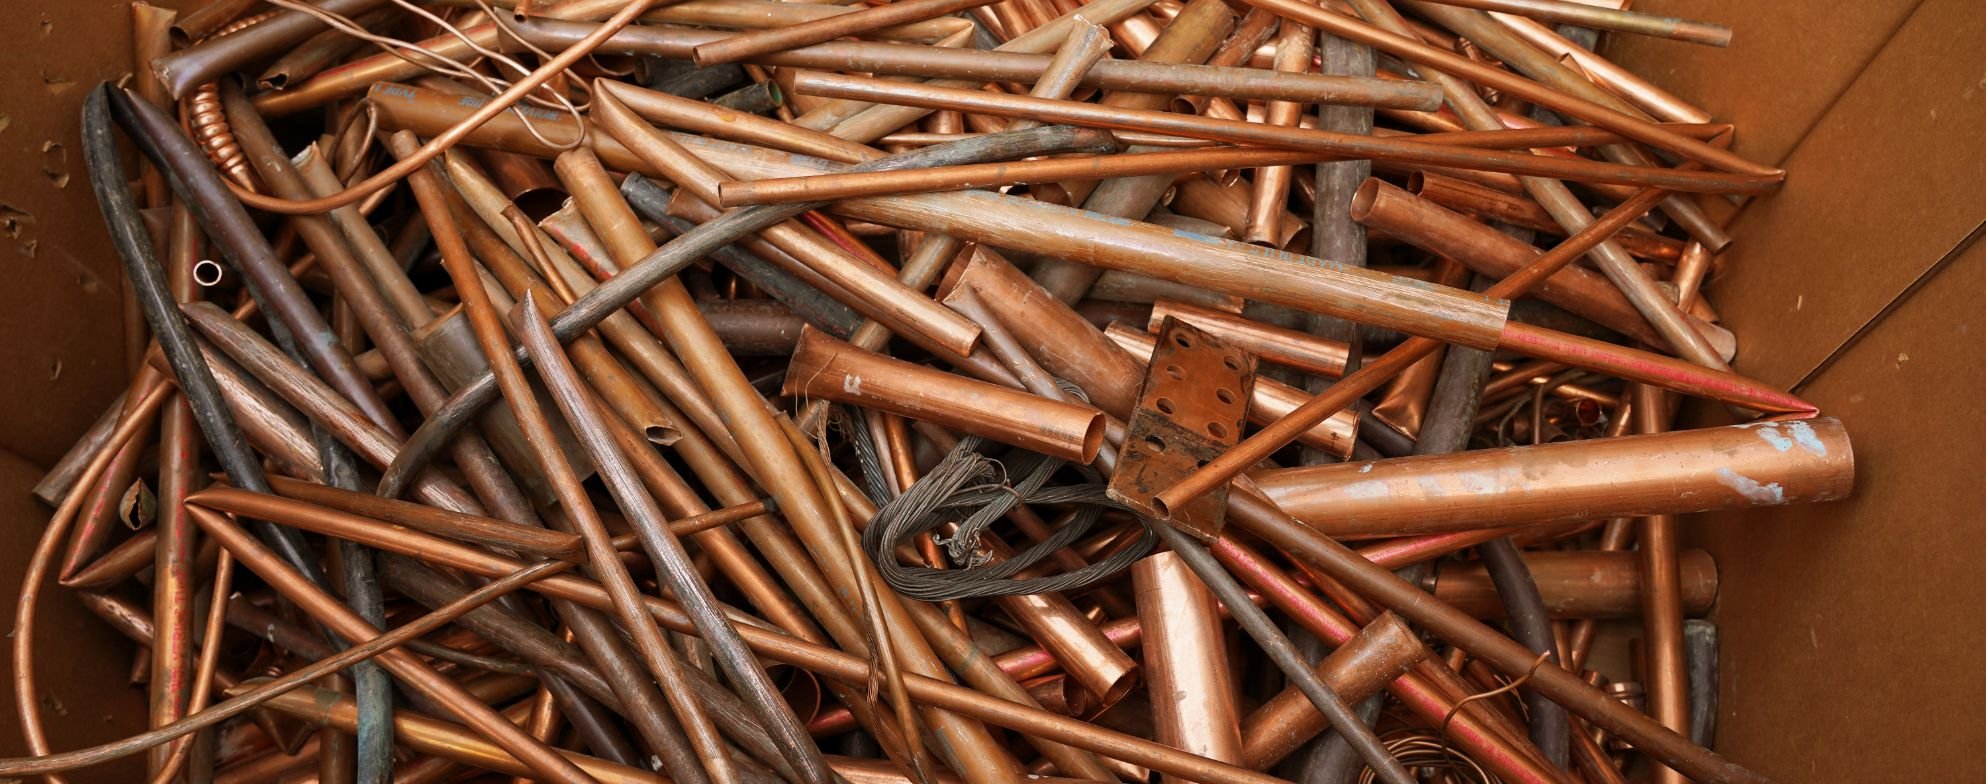 What Is Non Ferrous Metal?